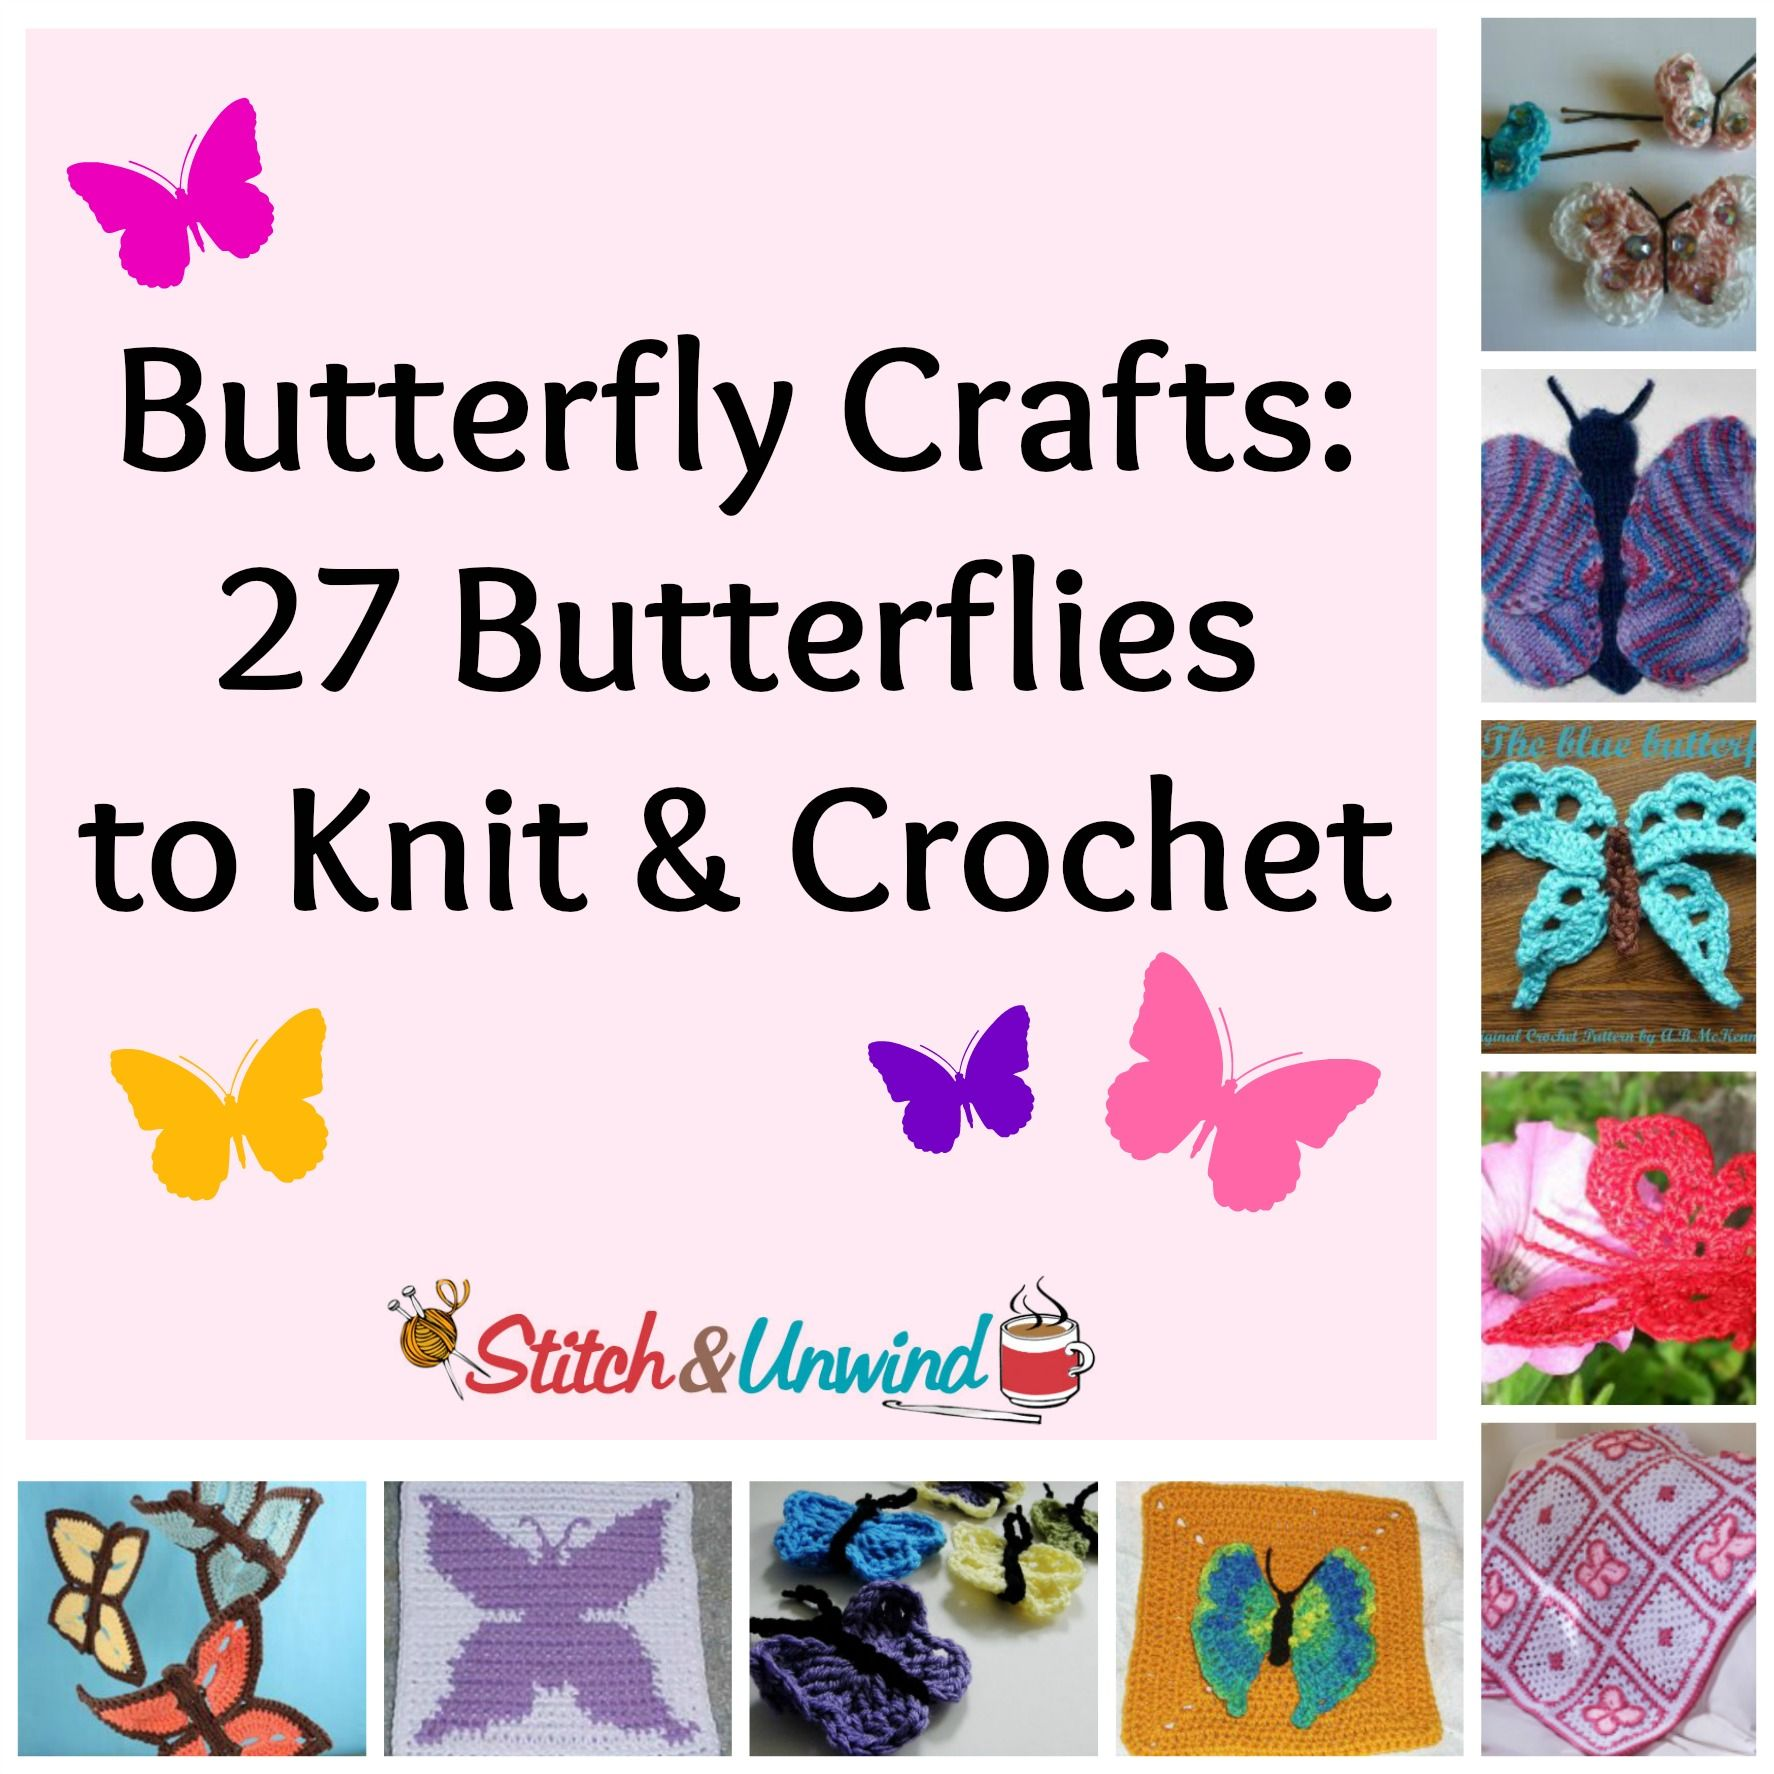 Butterfly Crafts: 27 Butterflies to Knit & Crochet + MORE ...